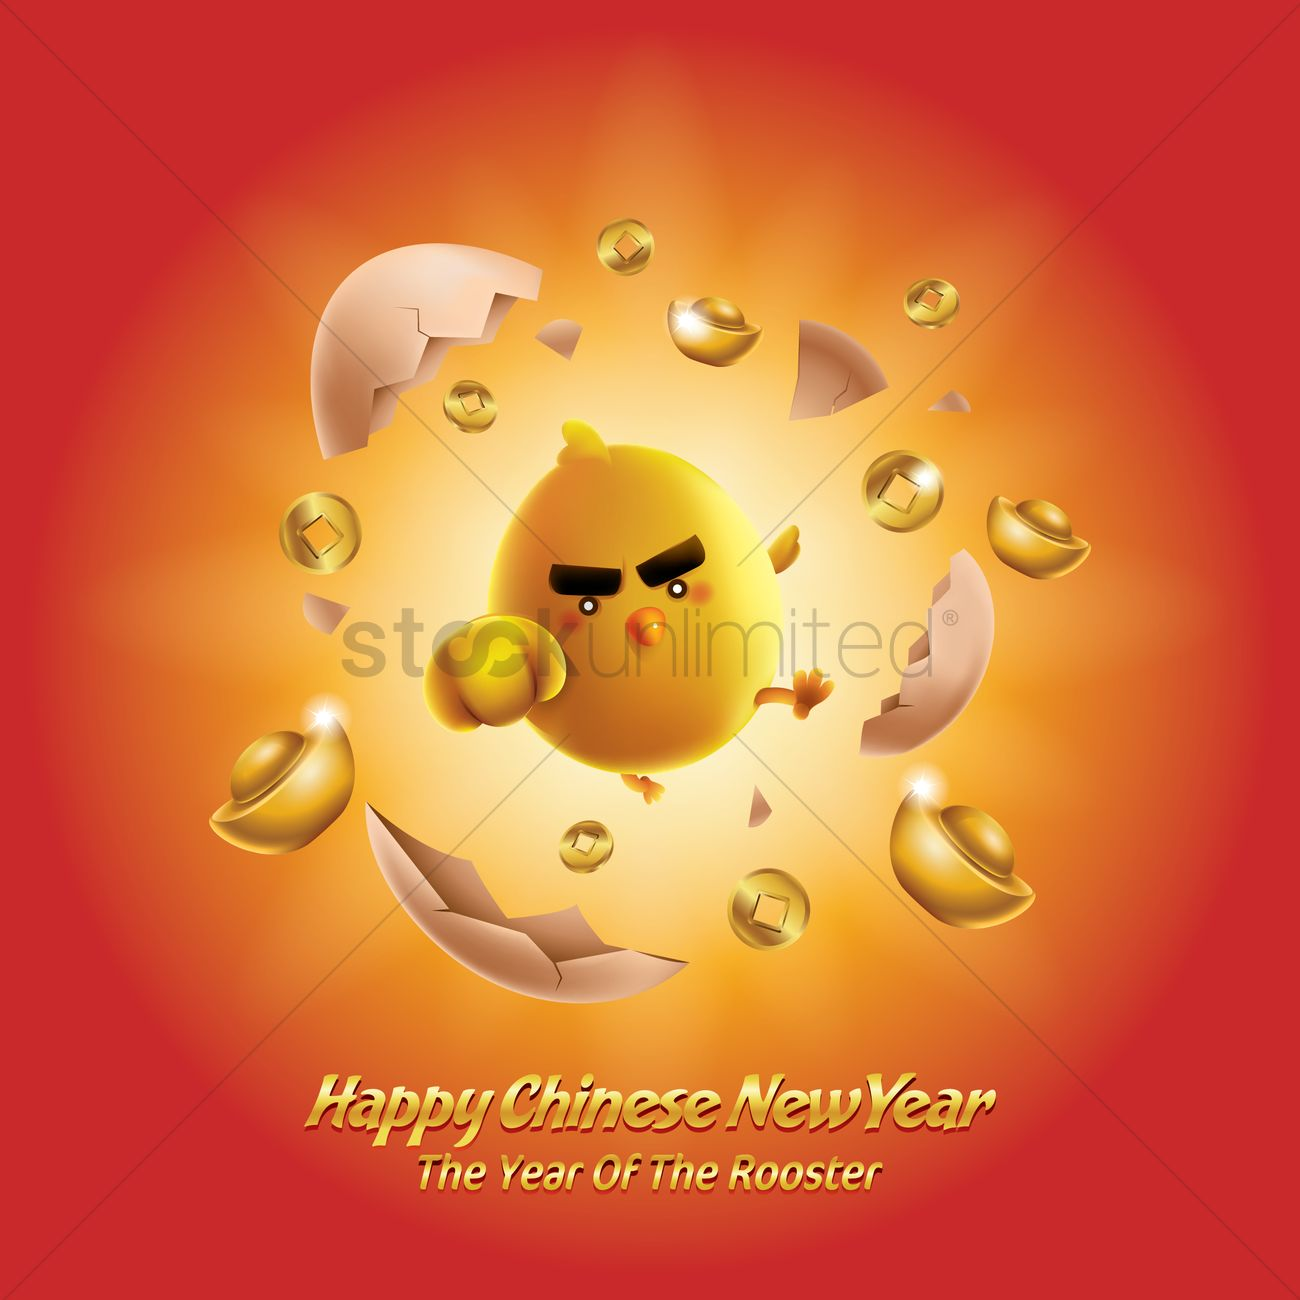 Happy Chinese New Year Greeting Vector Image 1978956 Stockunlimited